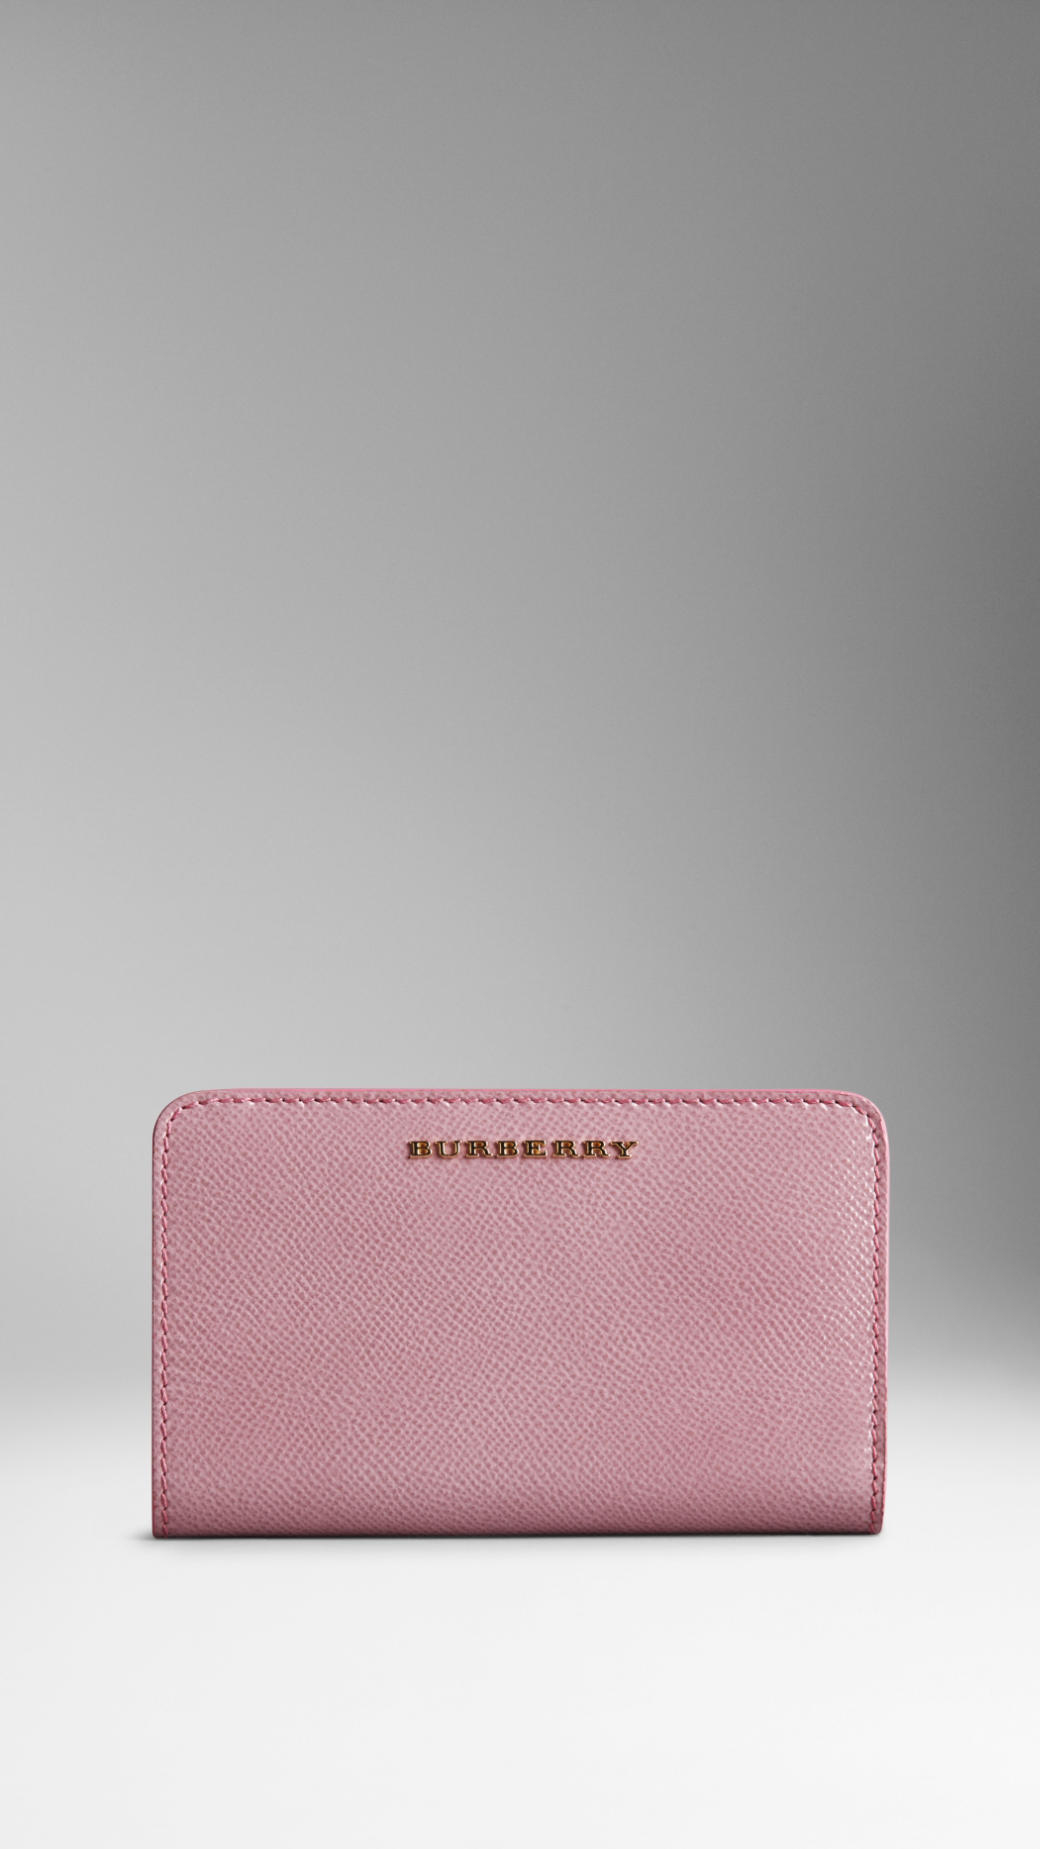 574ae33ea1b3 Burberry Patent London Leather Continental Wallet in Pink - Lyst